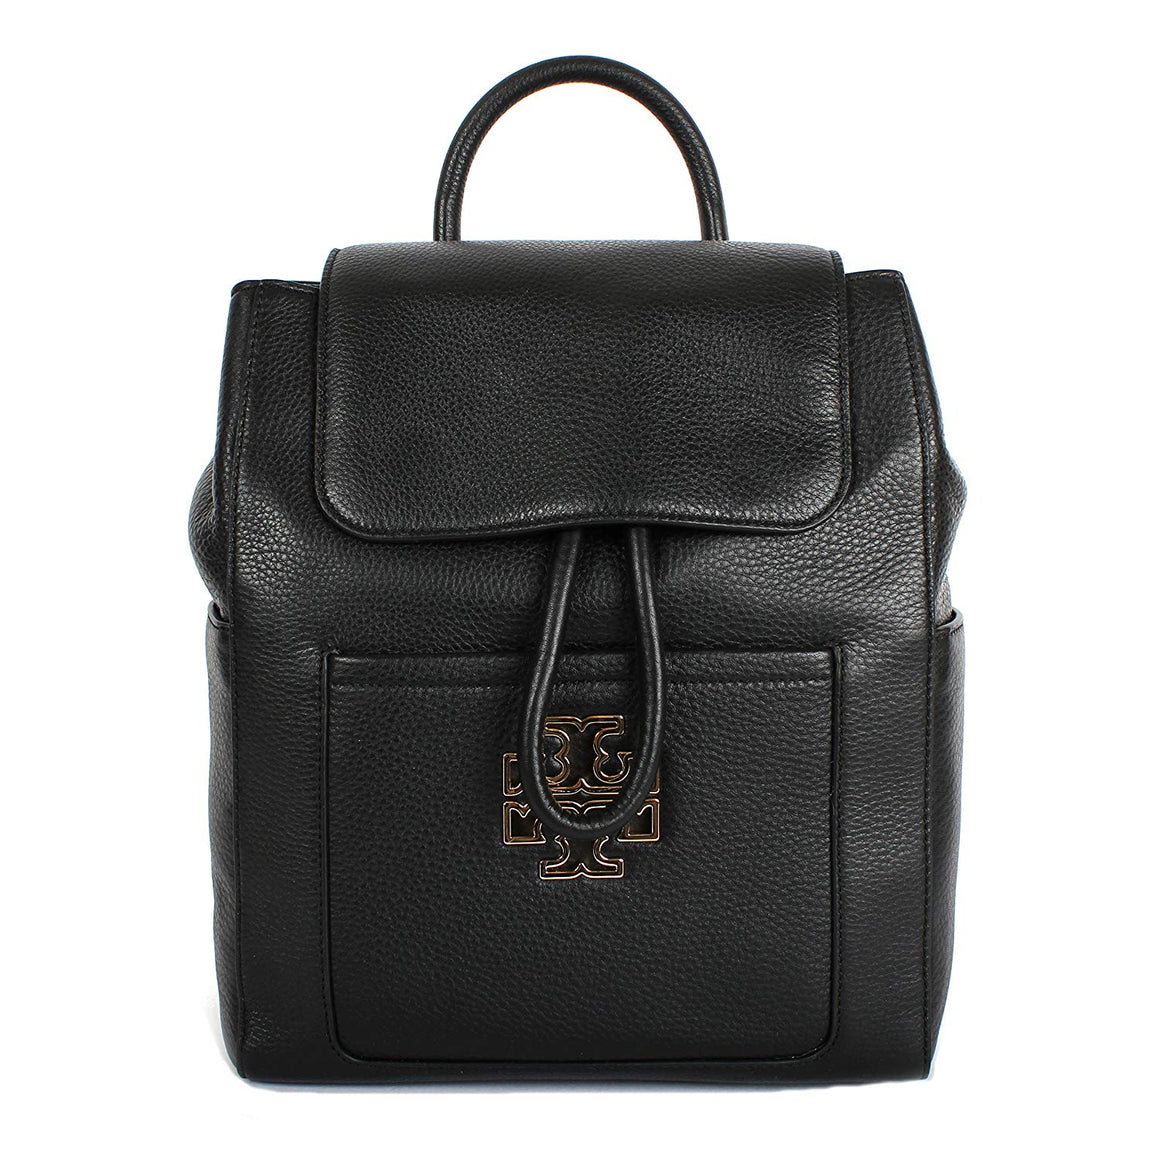 Tory Burch Britten Backpack In Black 8002